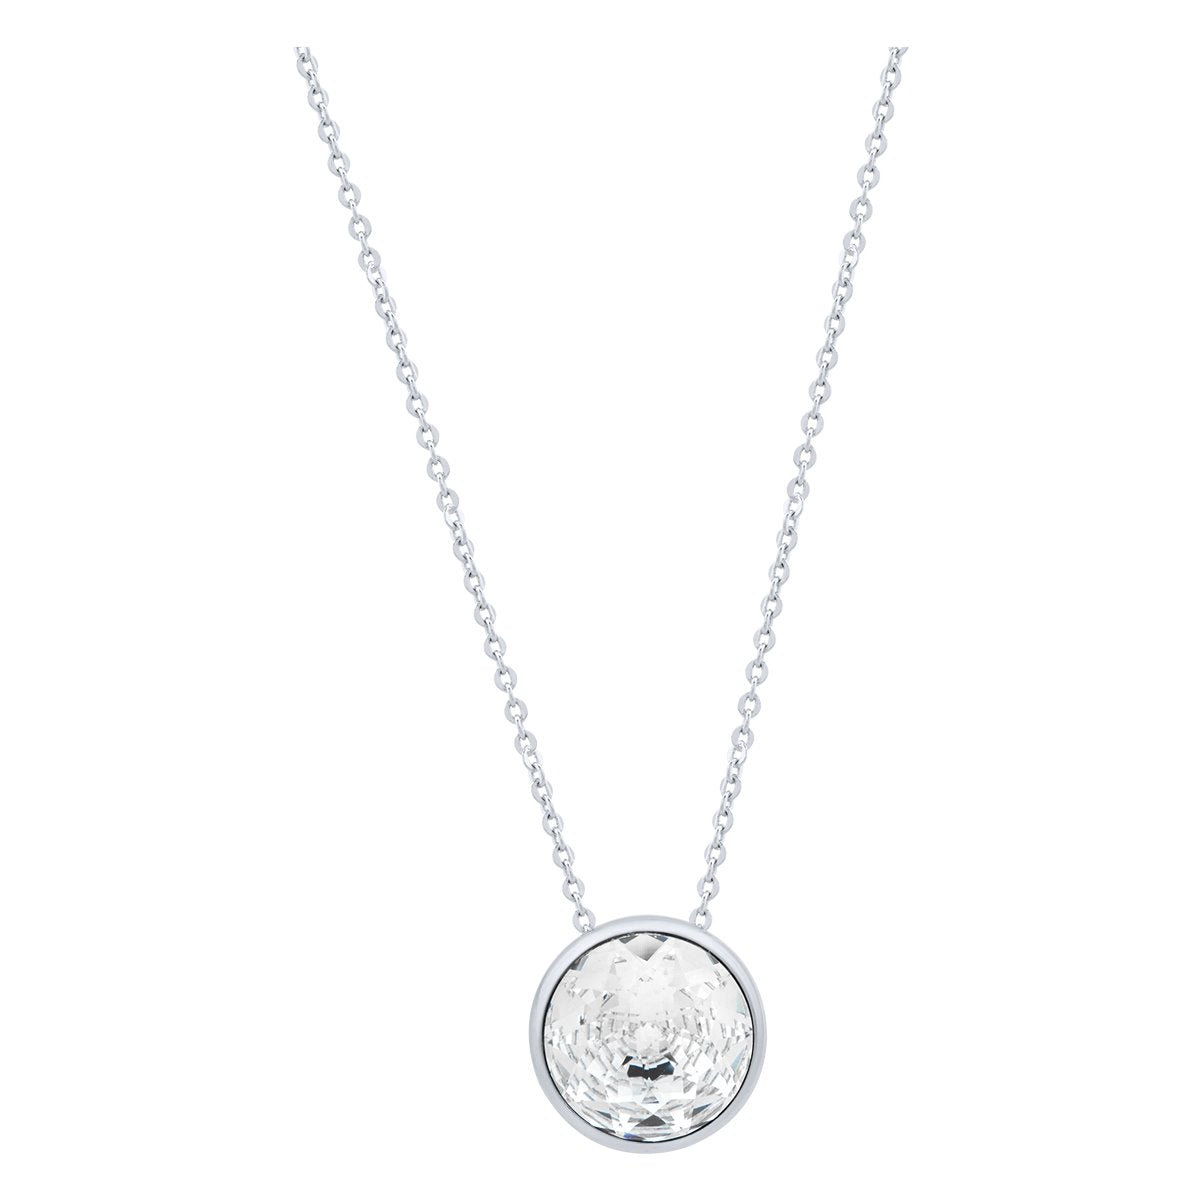 Elysees Necklace Silver Crystal JOY OF SPARKLE FOREVER CRYSTALS